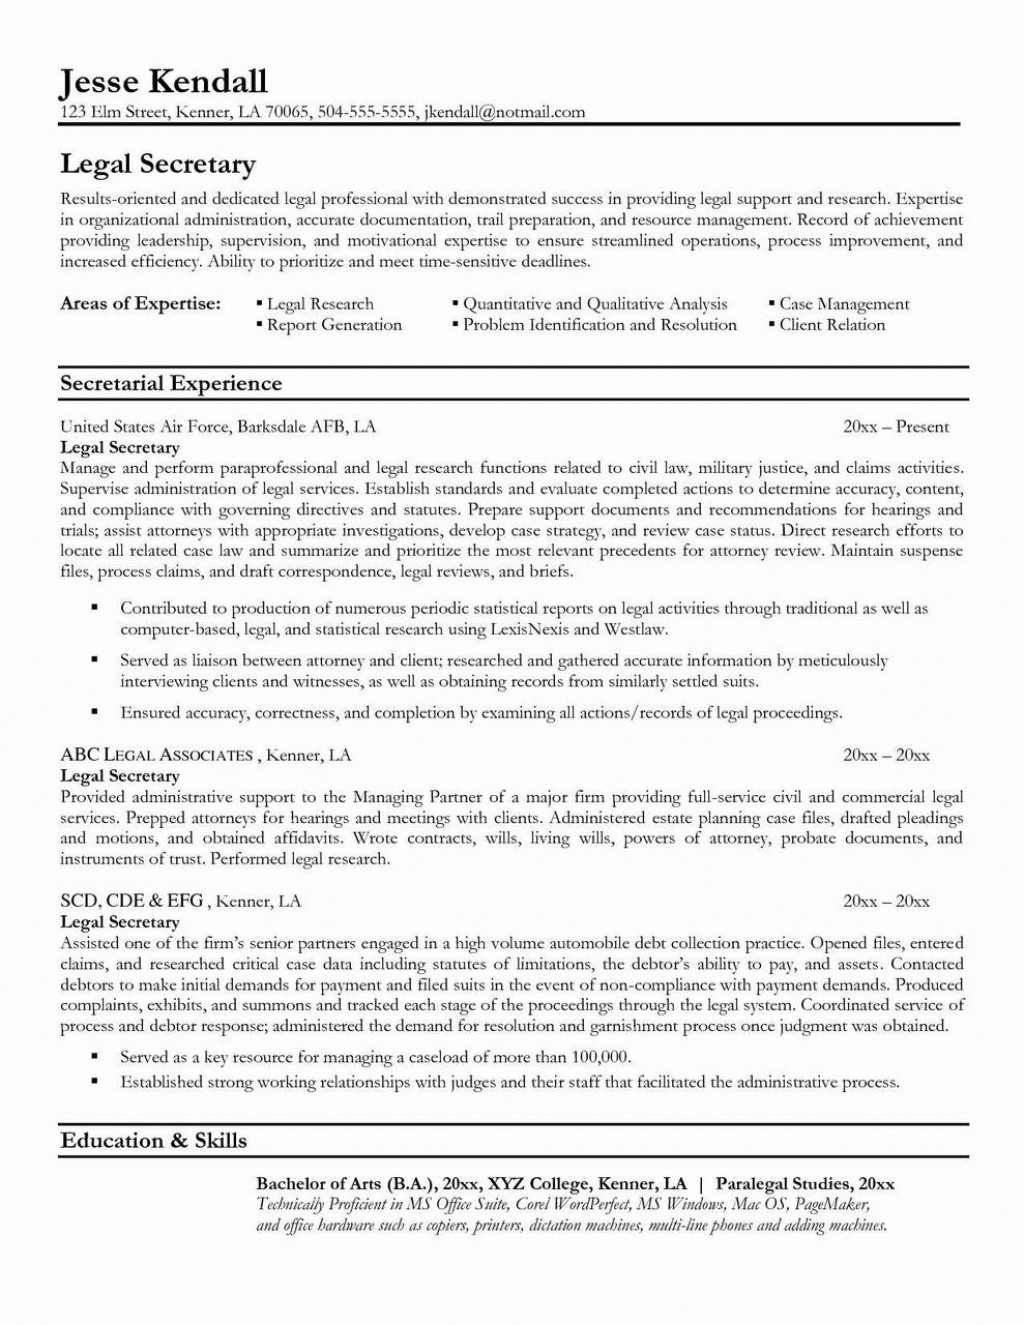 015 Beautiful Legal Assistant Resume Free Ideas College Essay Checker Inspirational Plagiarism For Research Papers Printing Press Production O Awesome Ielts Punctuation Large